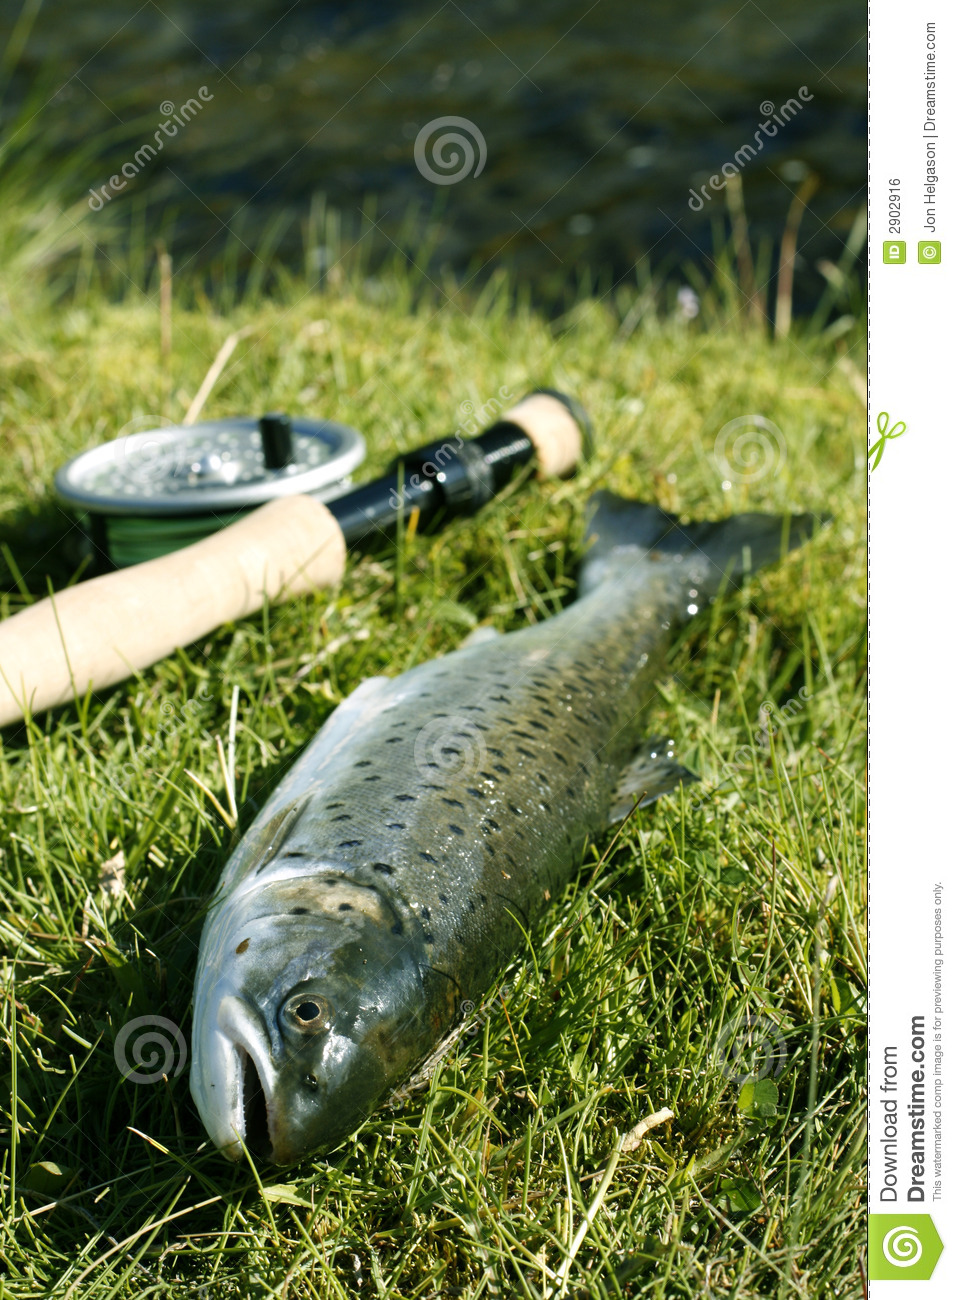 Fish on dry land stock photo image of natural hobby for Dry land fish